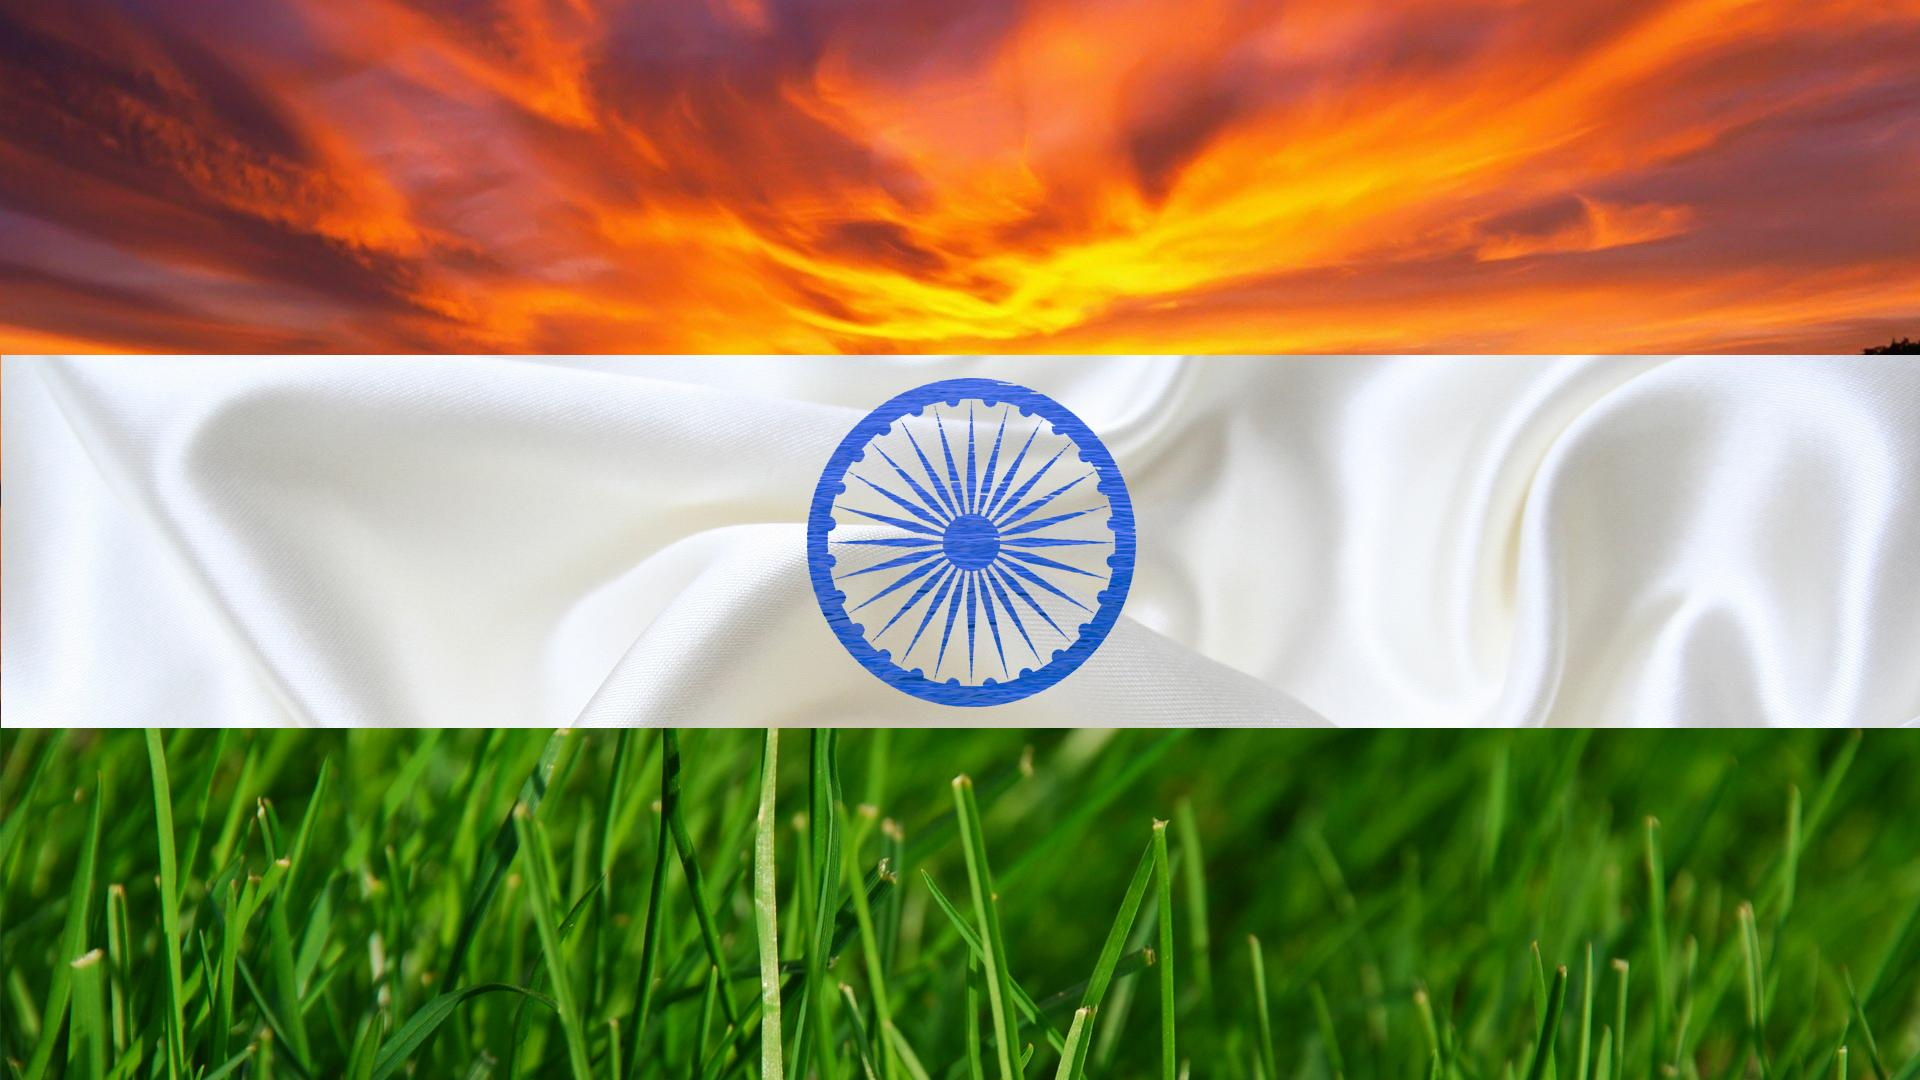 India Flag Wallpaper Download Desktop Wallpaper Images 1920x1080